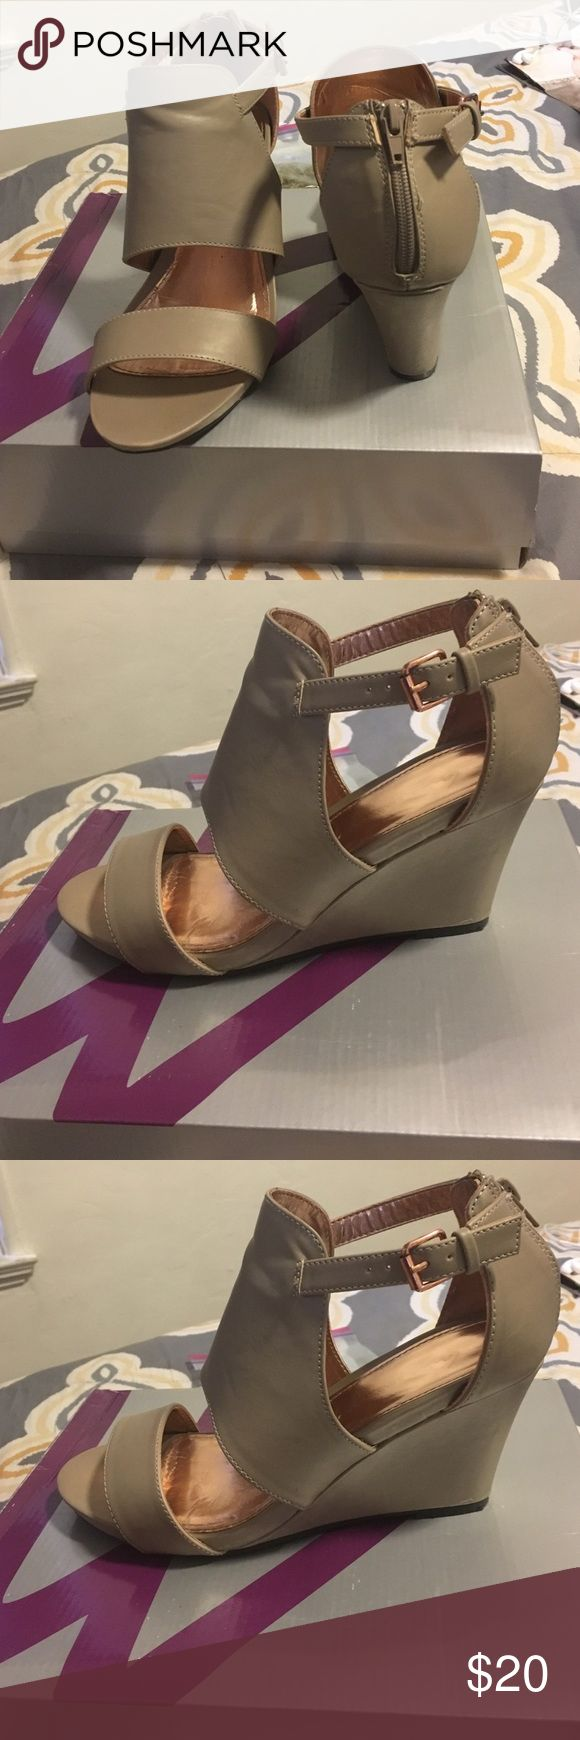 Womens sandals that zip up the back - Lane Bryant Nude Band Wedge Sandal Size 10w